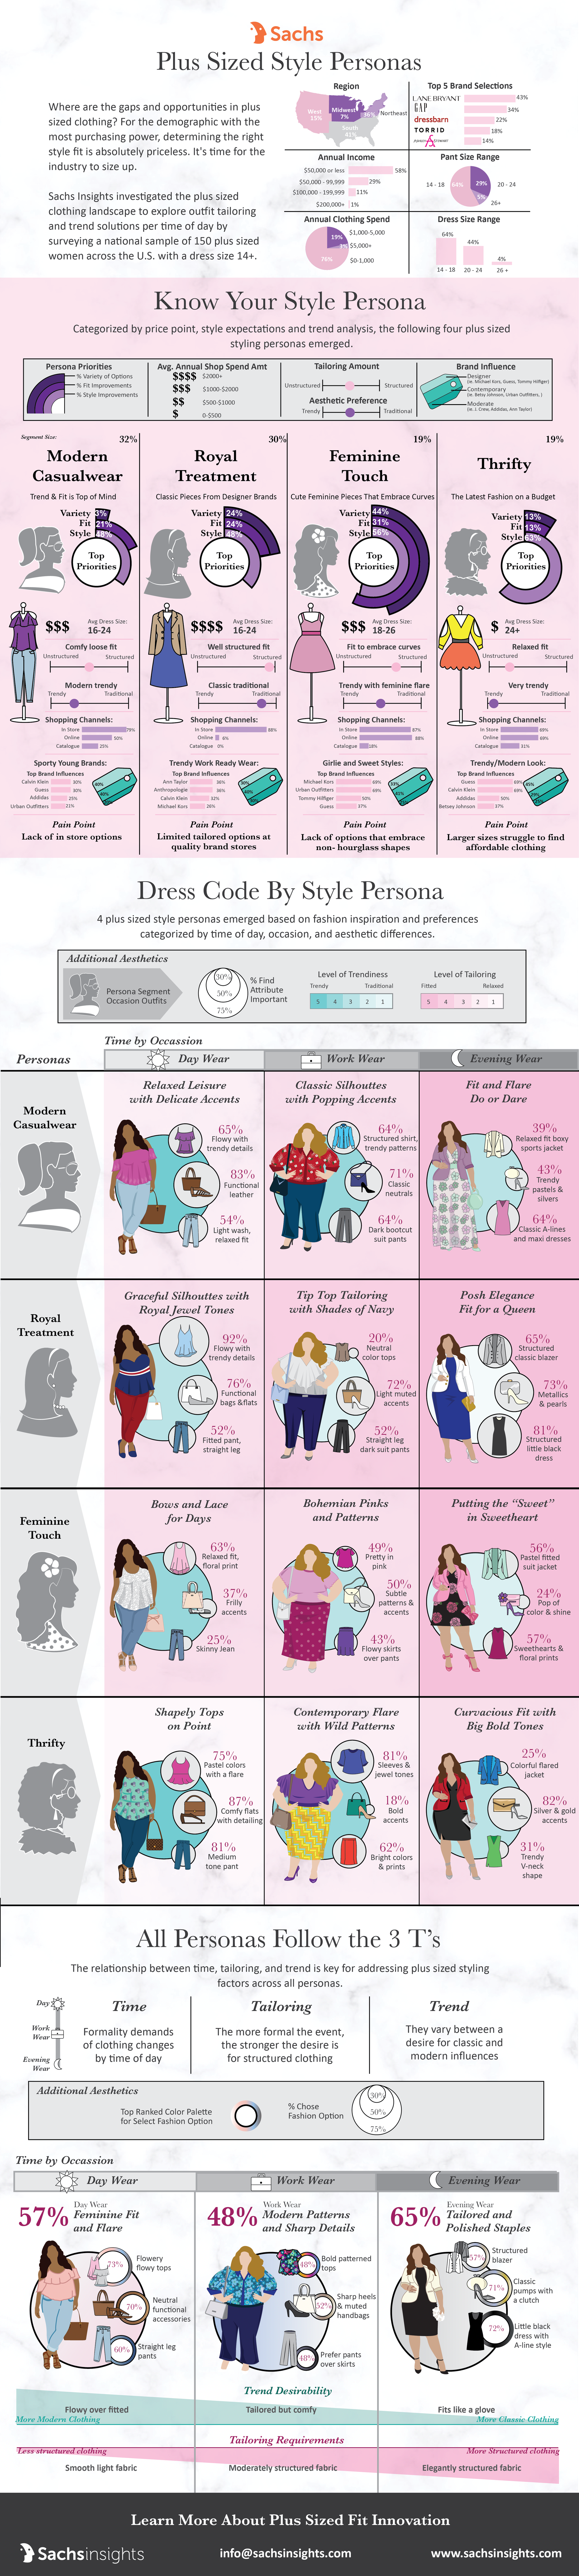 Plus Sized Style Personas